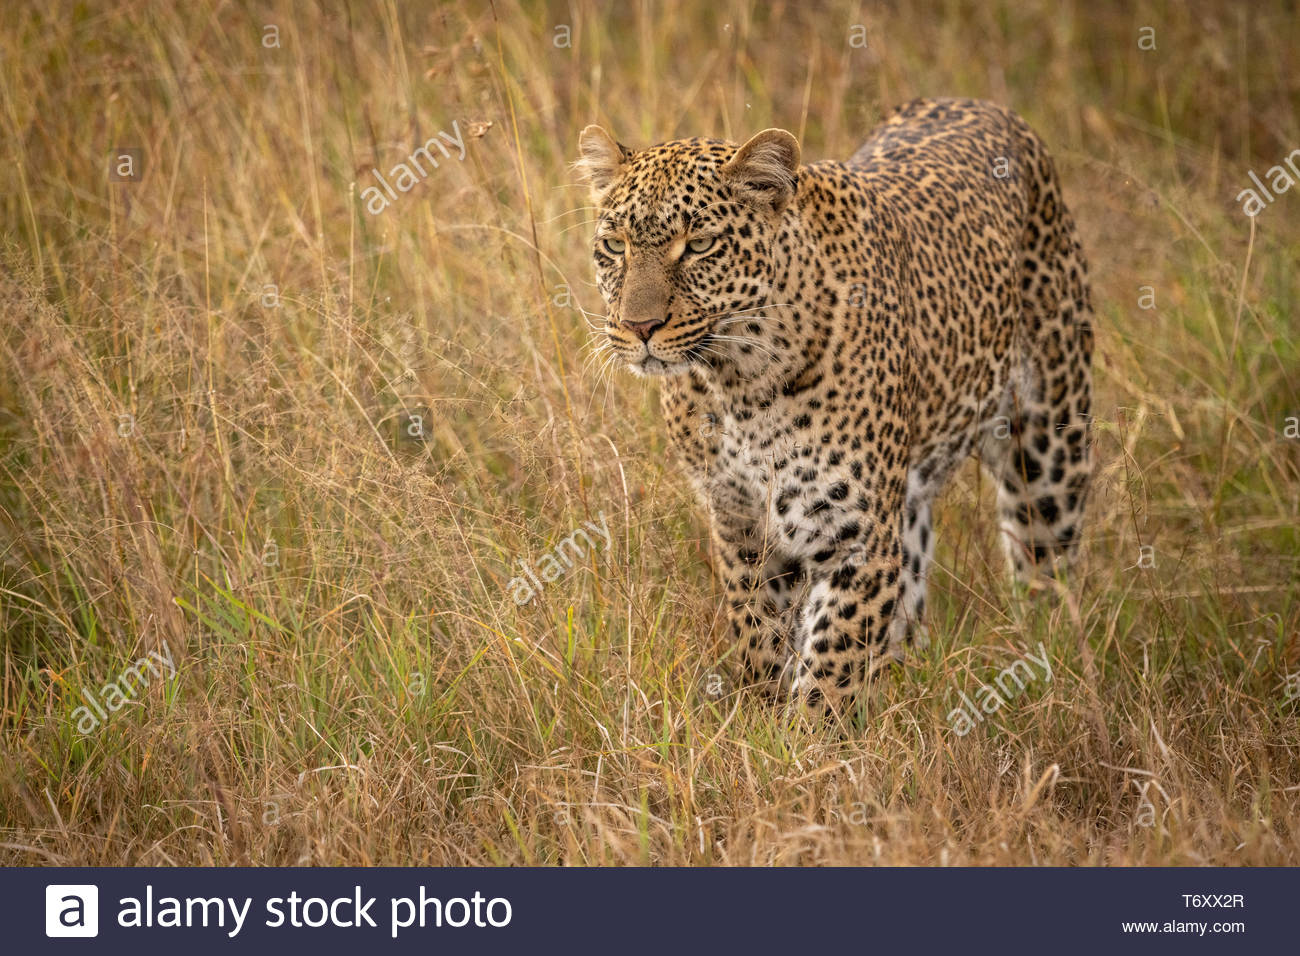 Leopard stands looking ahead in long grass - Stock Image